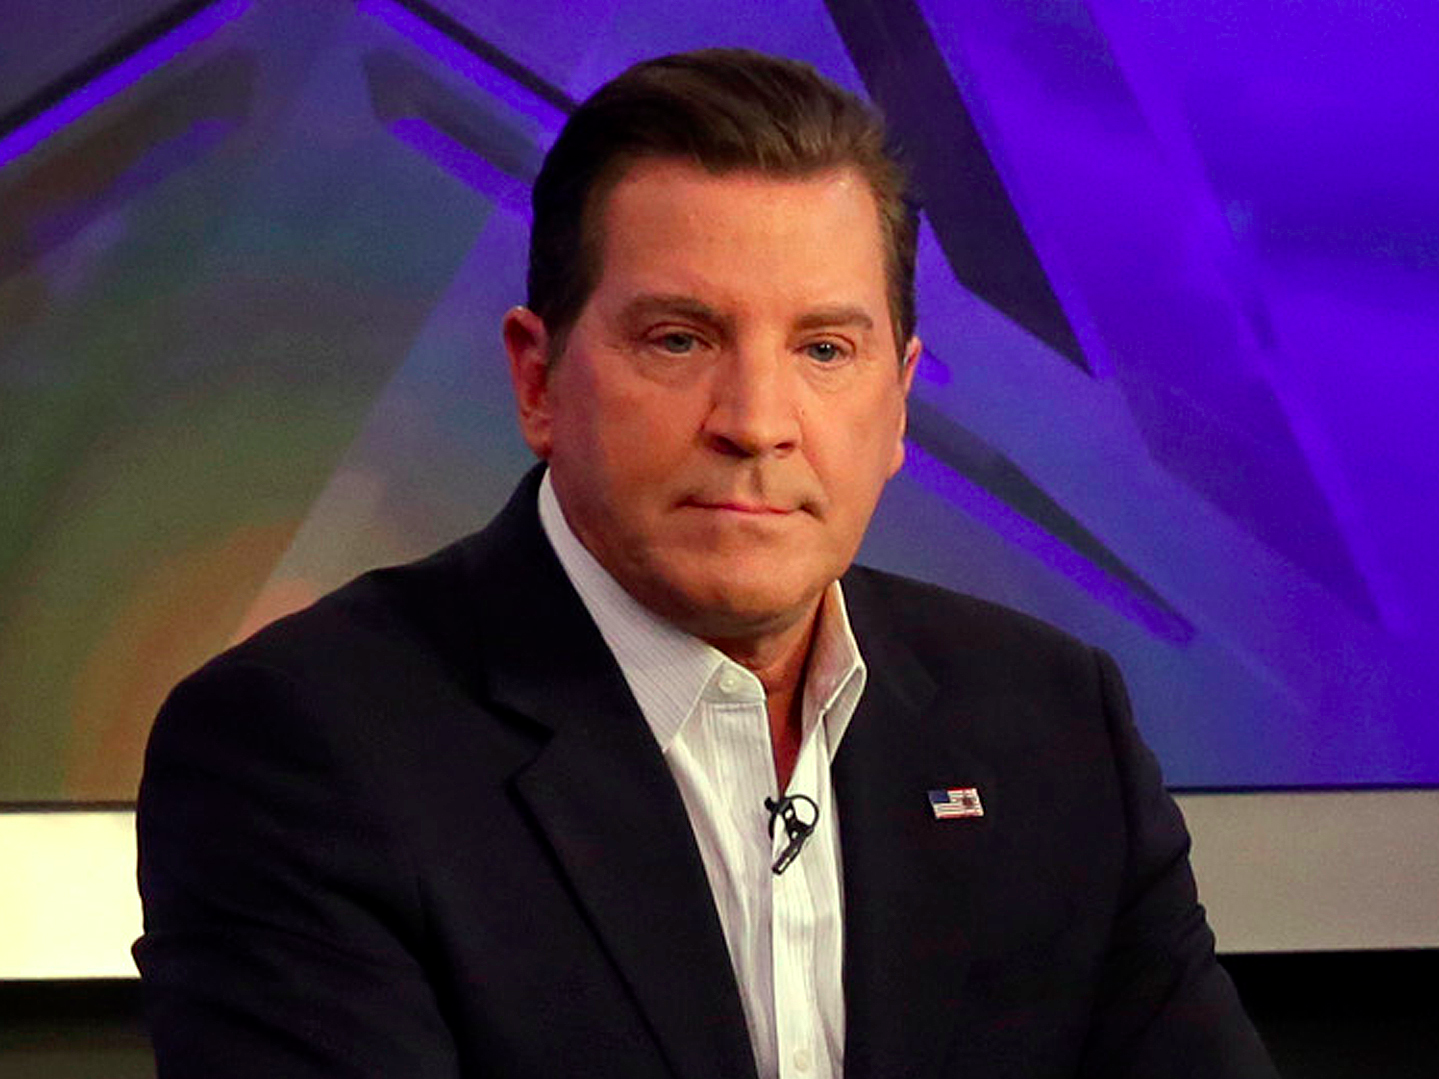 Eric Bolling Shares Heartbreaking Story About His Son's Overdose